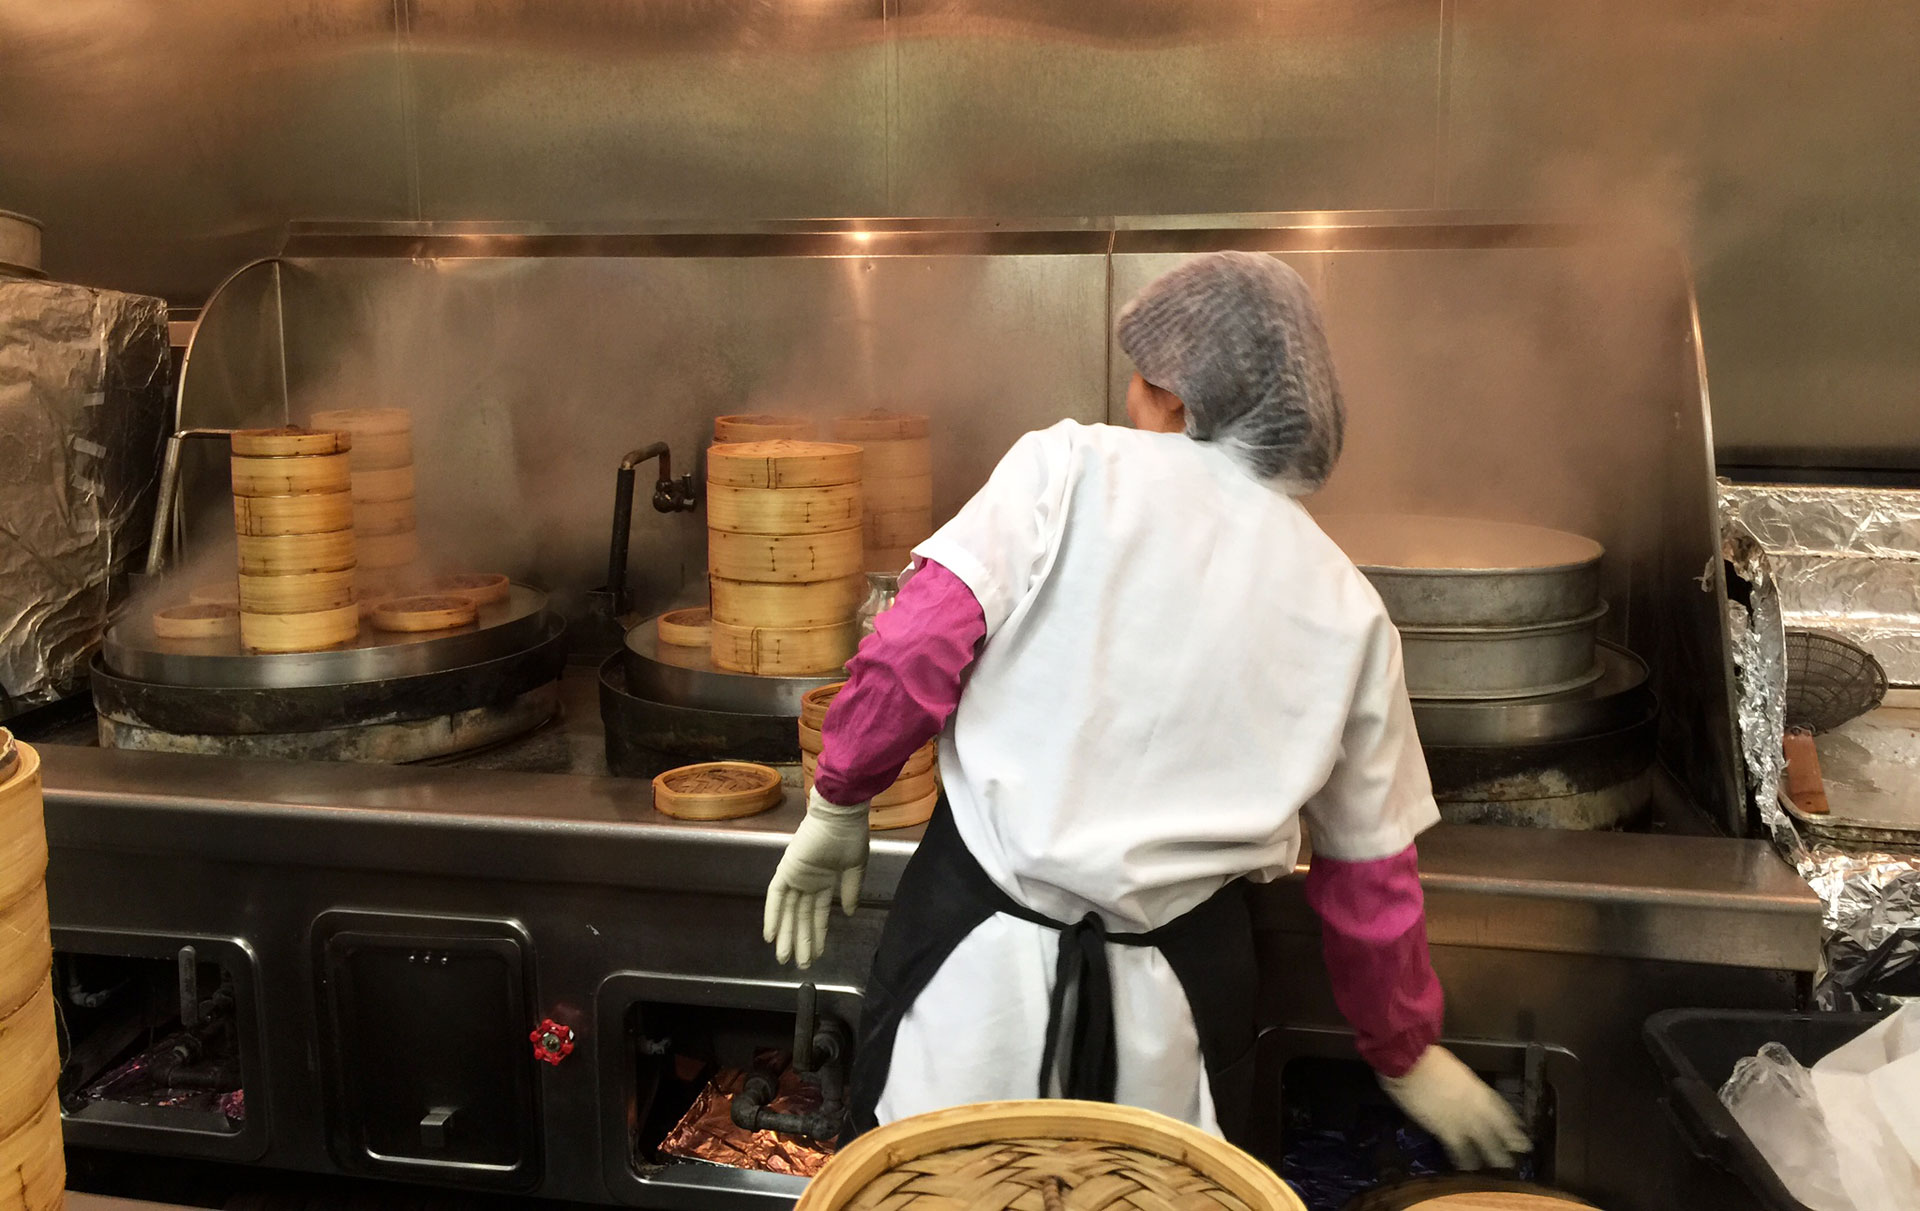 Prep chefs work in the kitchen at Yank Sing dim sum restaurant in San Francisco. Workers there won a $4 million wage theft settlement in 2014.